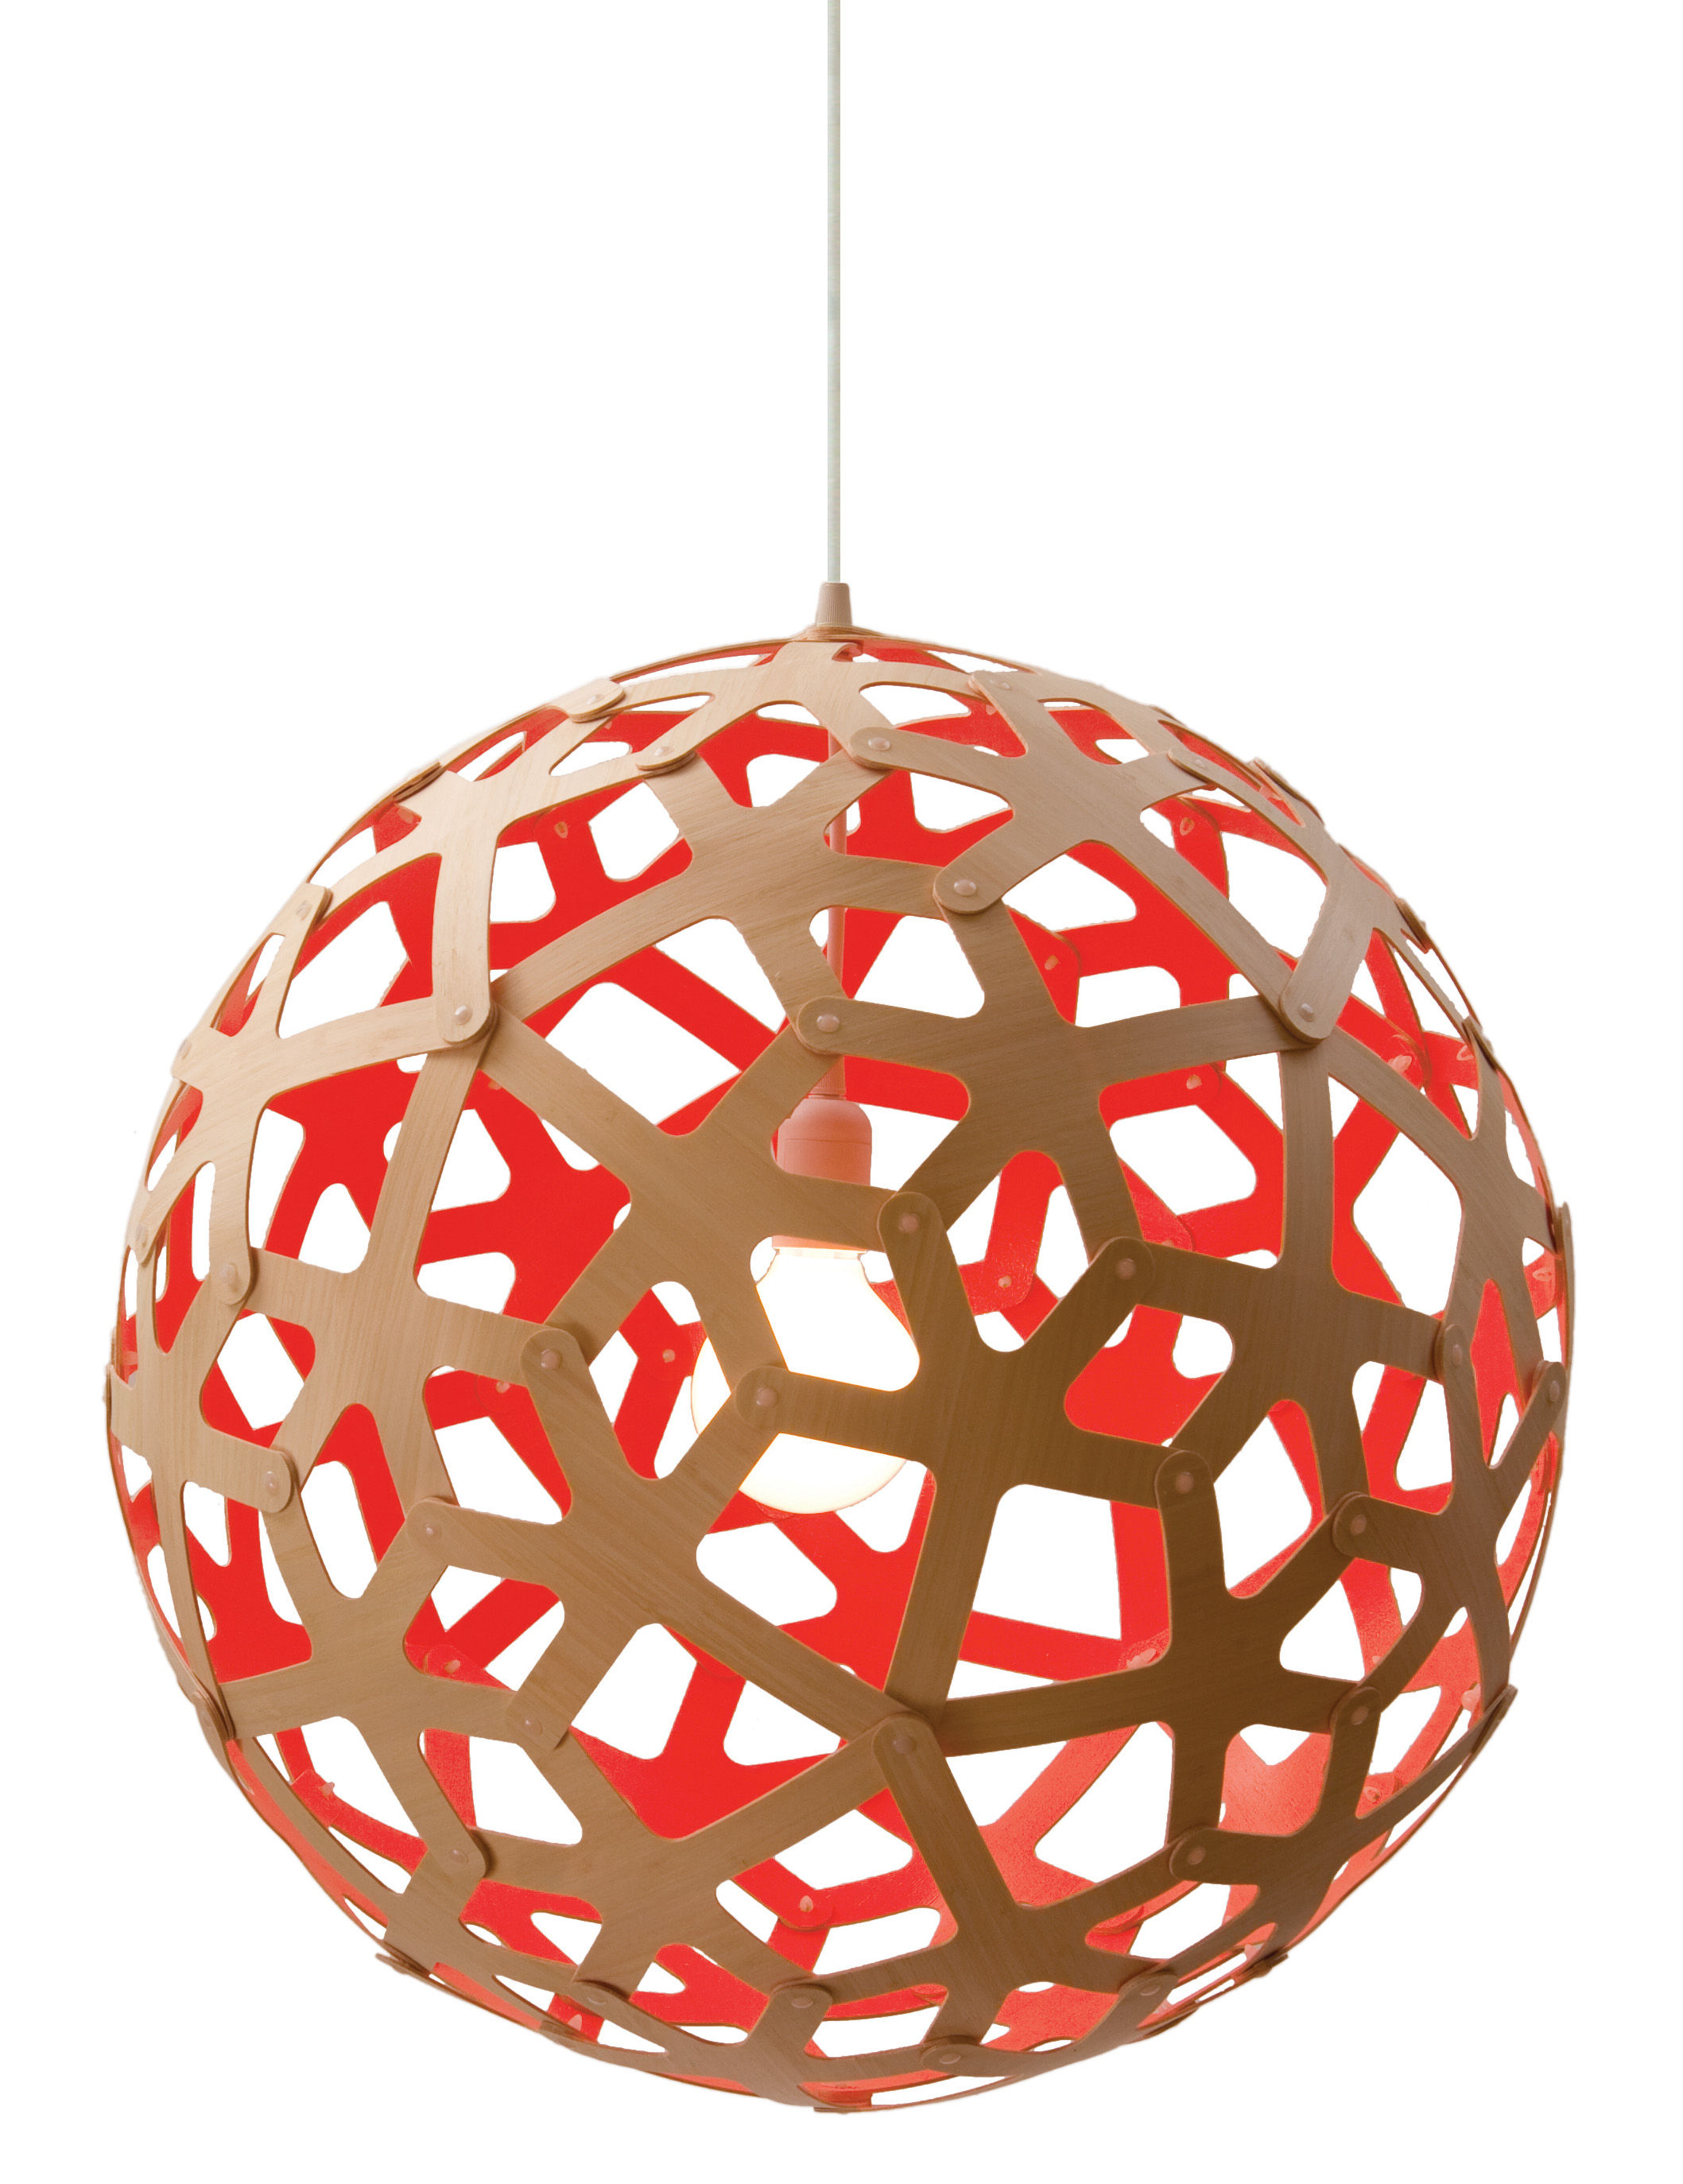 Luminaire - Suspensions - Suspension Coral / Ø 40 cm - Bicolore rouge & bois - David Trubridge - Rouge / Bois naturel - Pin